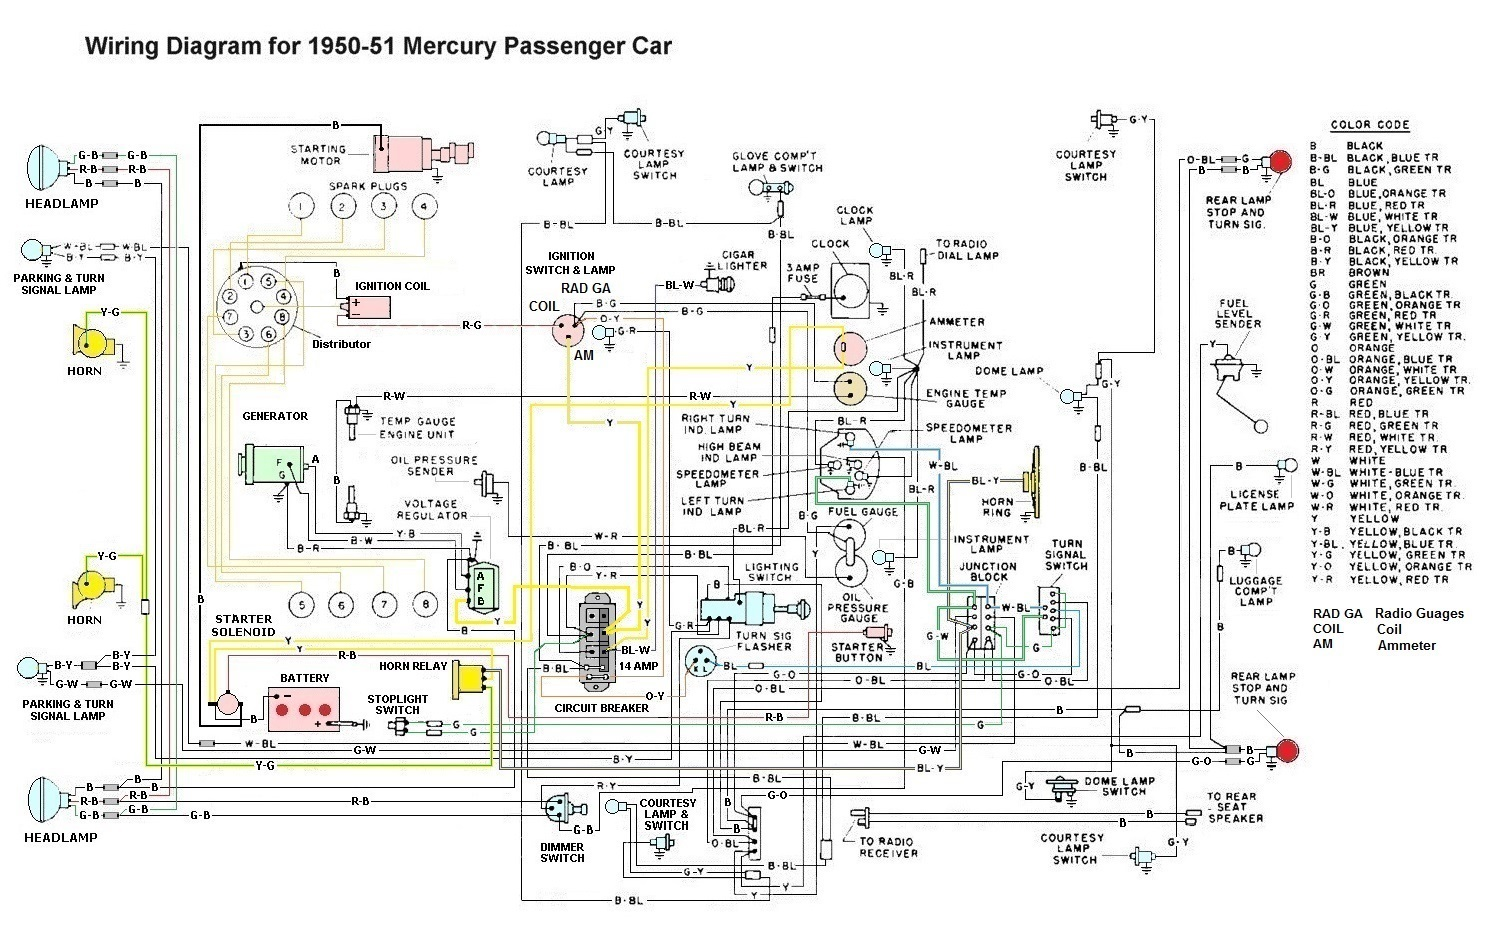 1951 Mercury, Wiring Diagram, Still six volts with a positive ground.